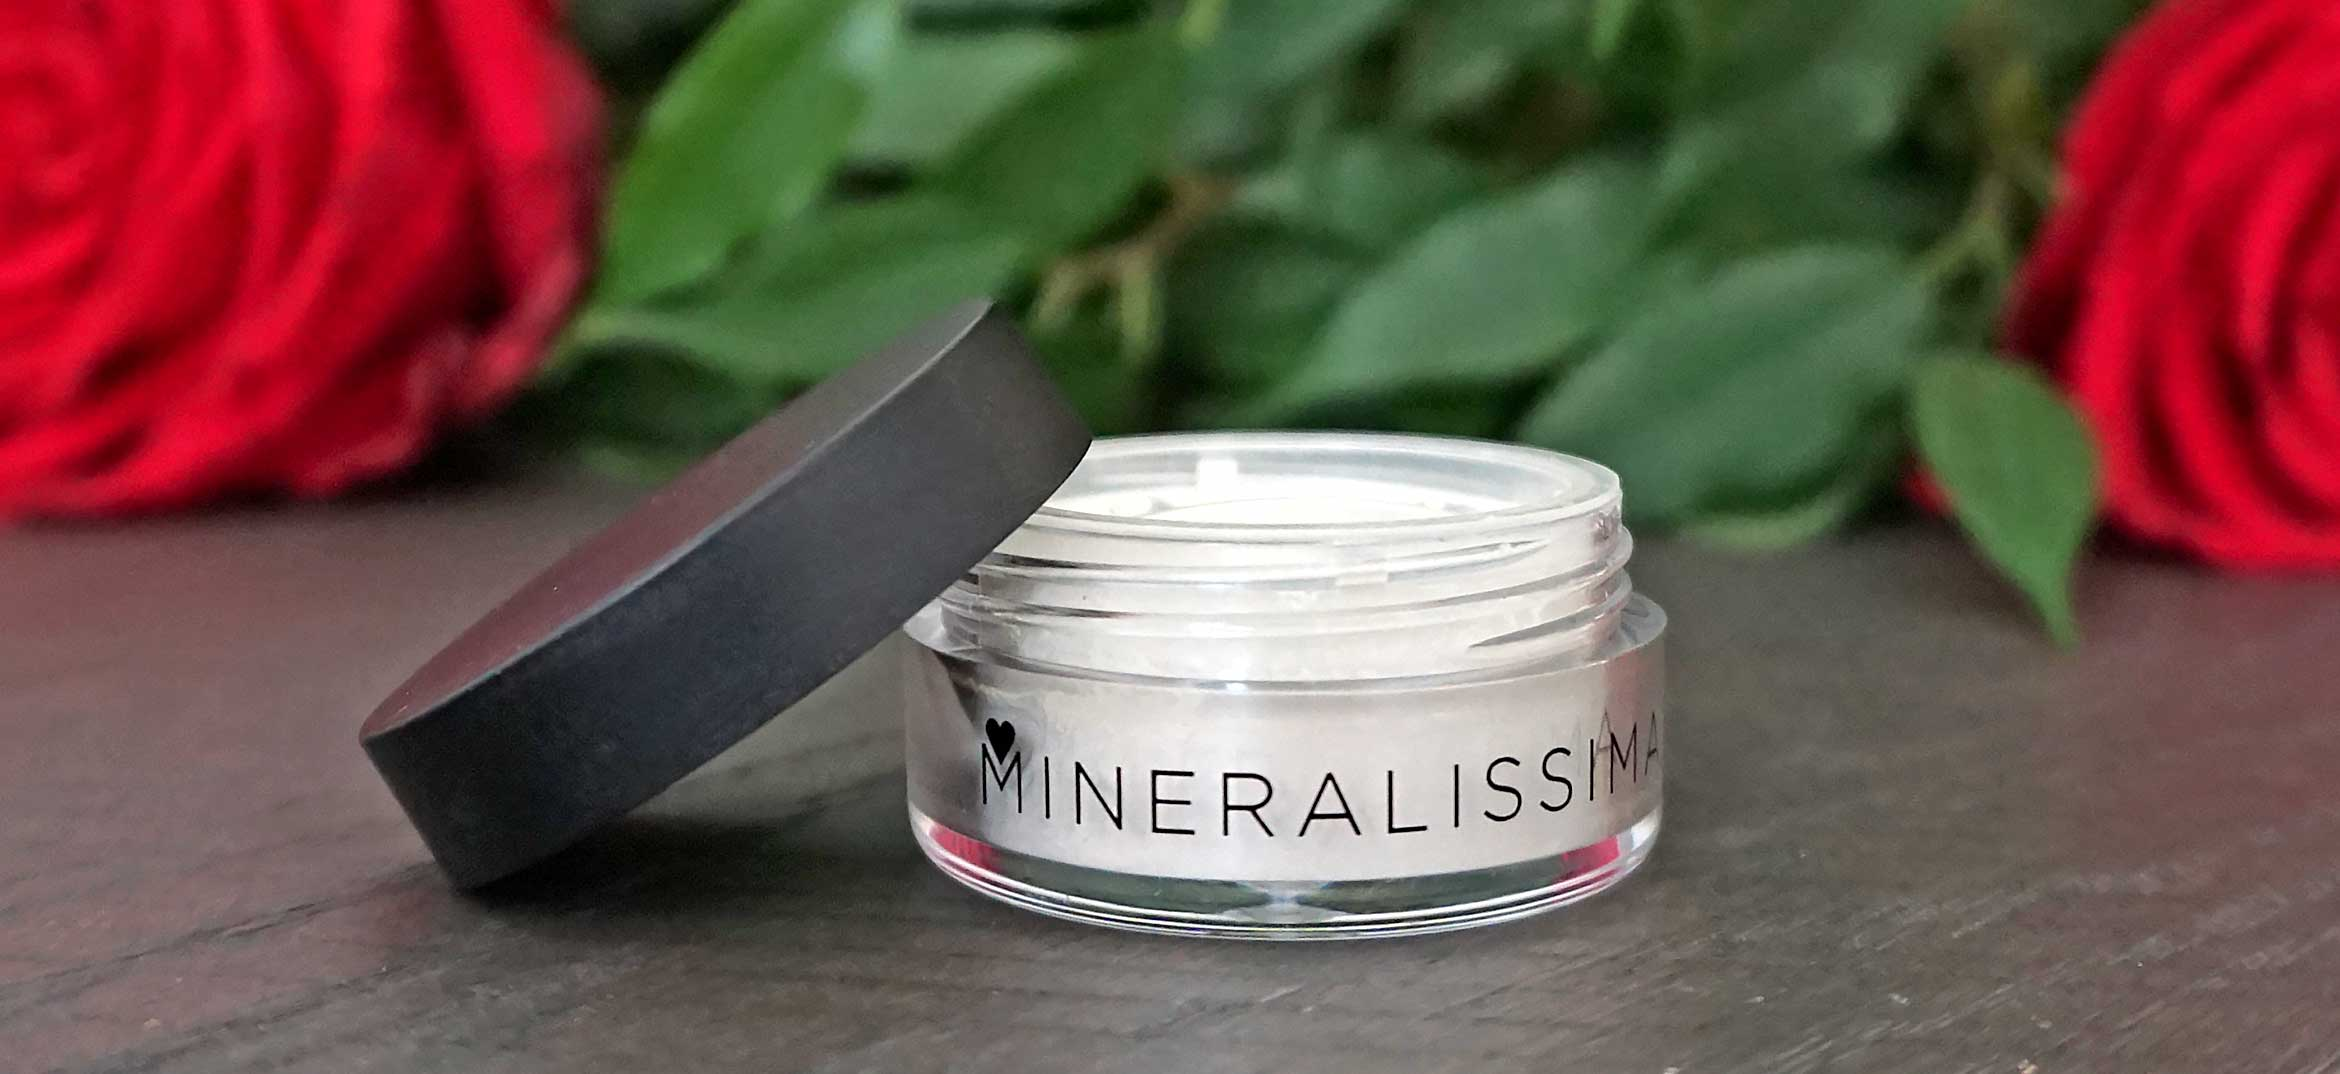 mineralissima highlighter review